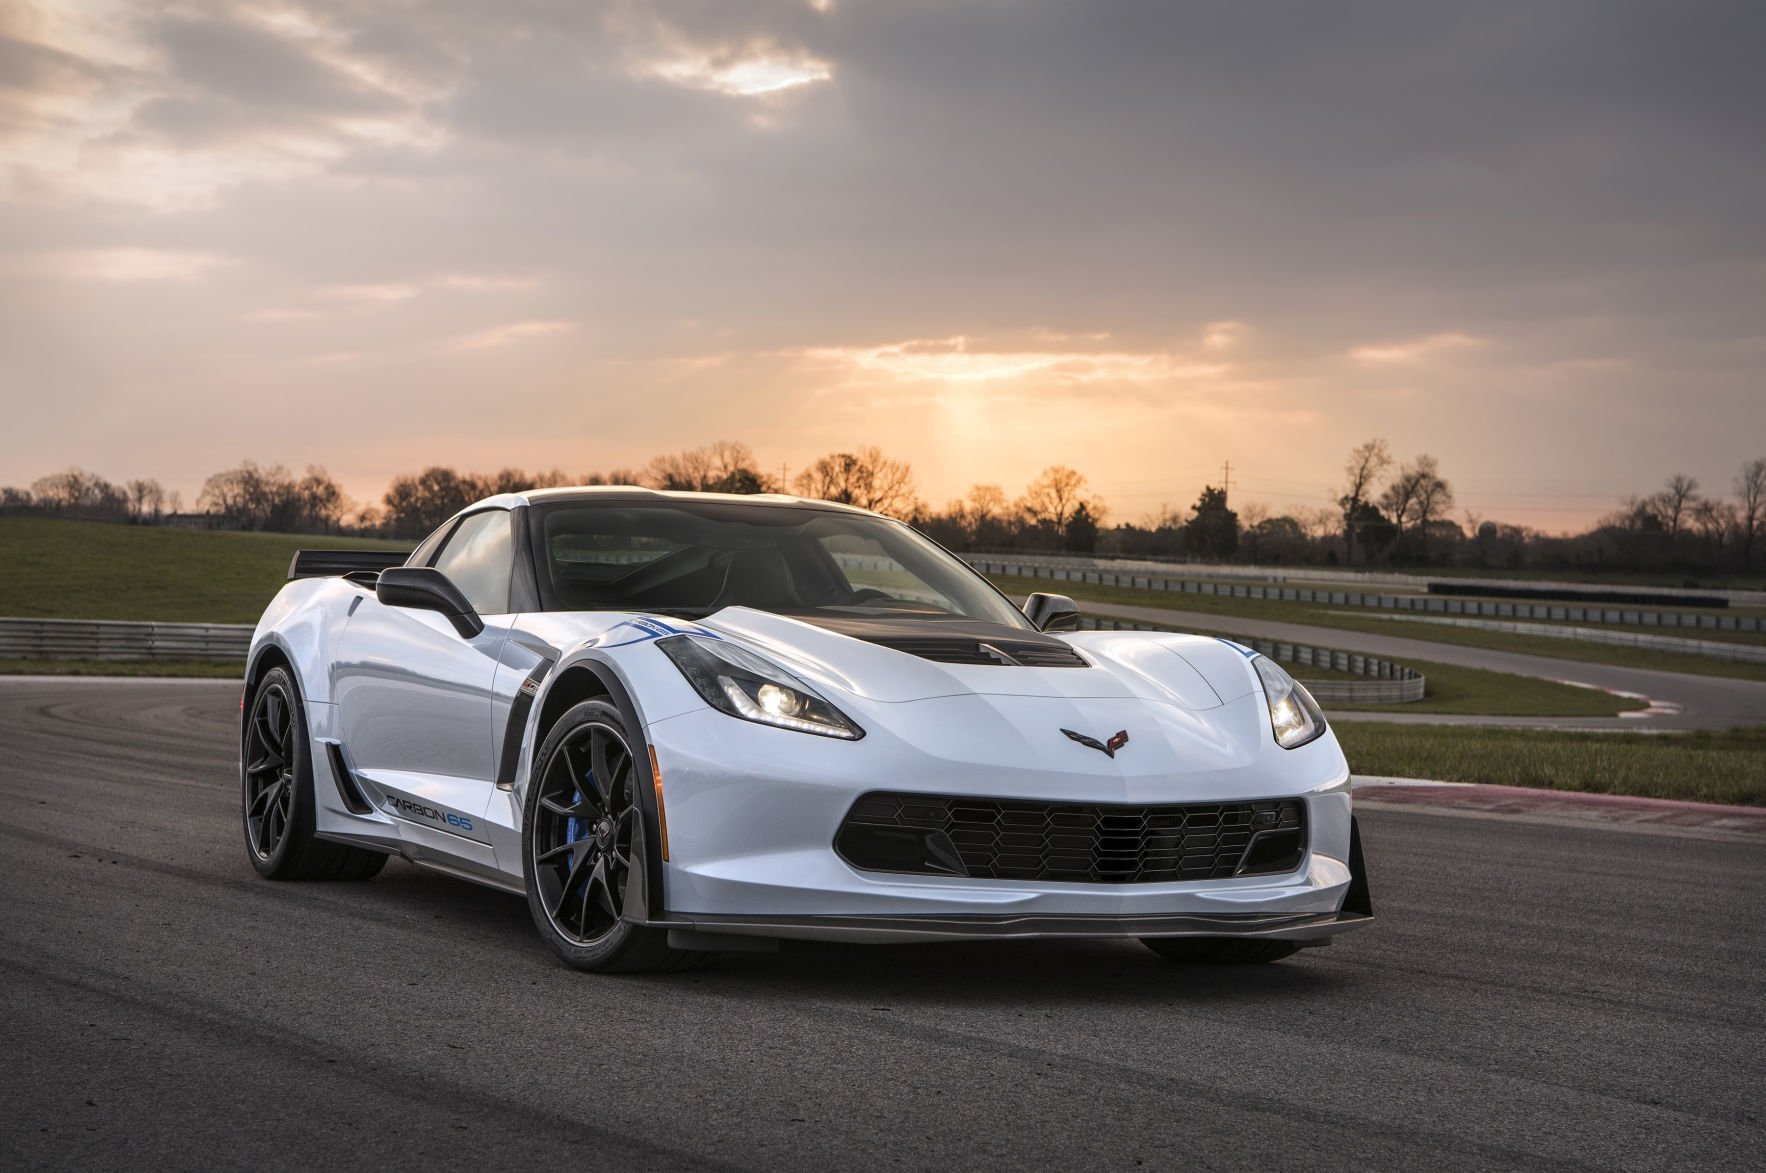 Eye Candy: Luxury Sports Cars Rack Up Limited Sales But Can Steer Shoppers  To Dealers, Manufacturers